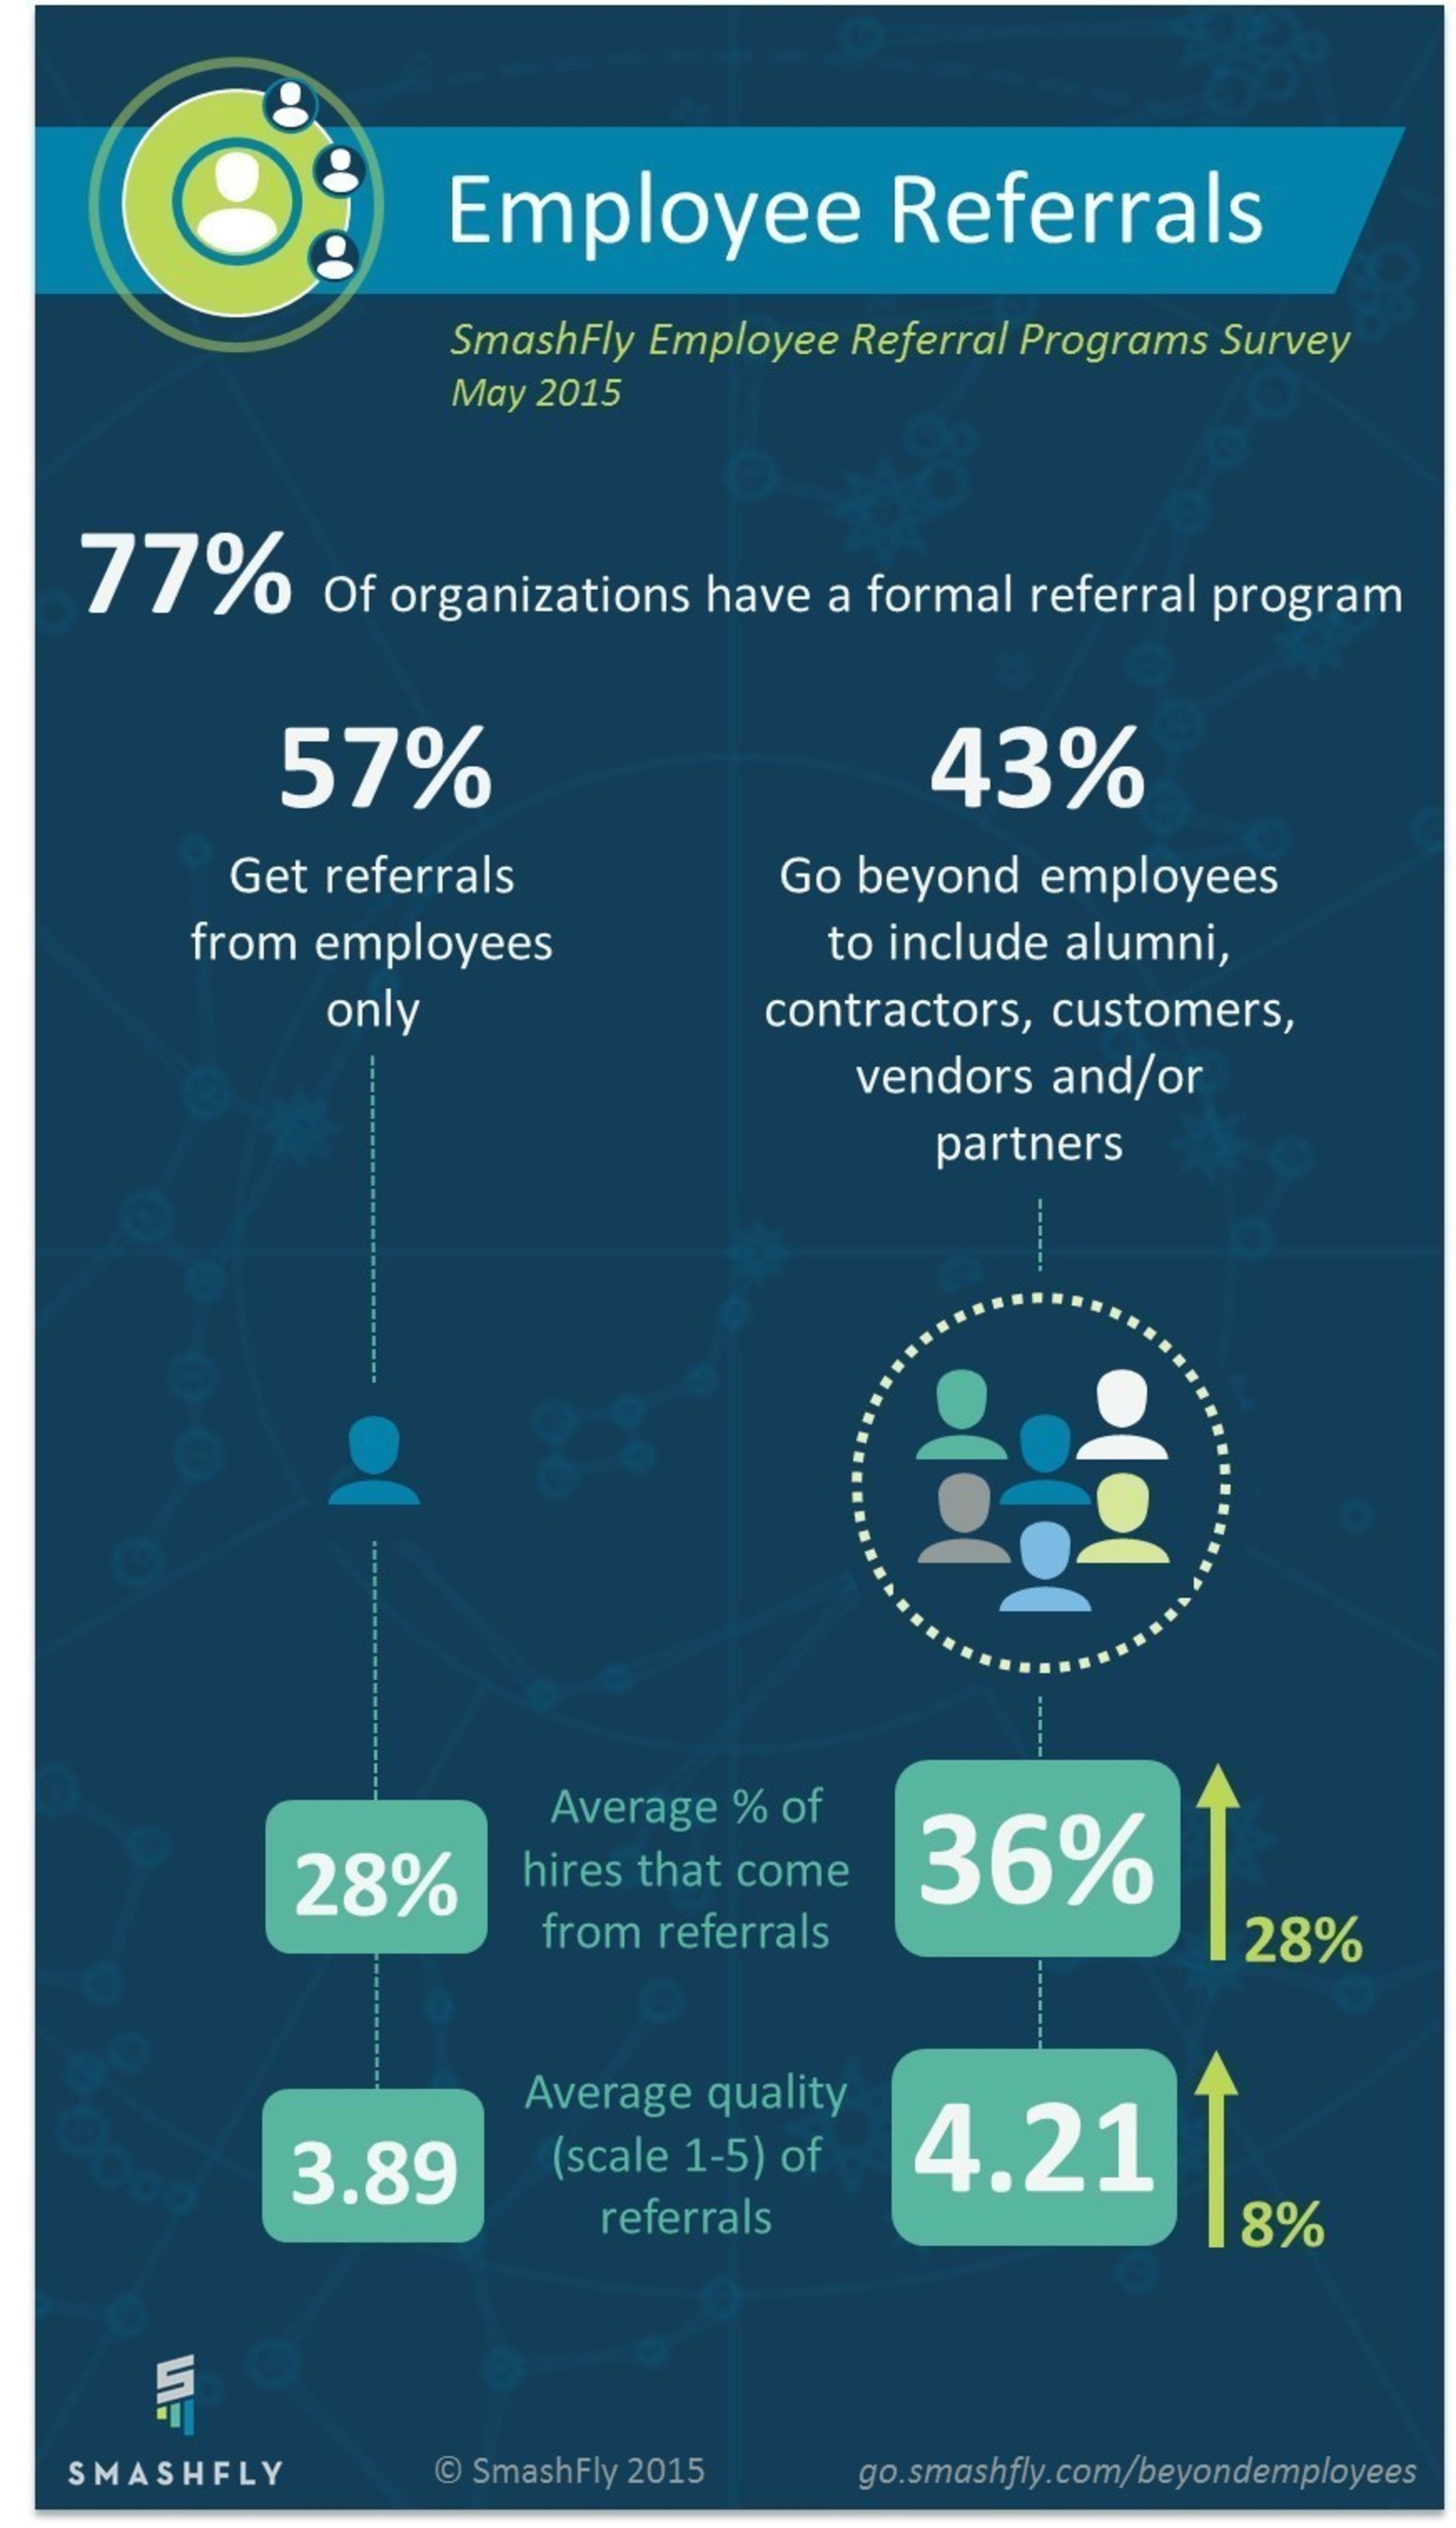 Organizations that create a modern referral network for recruiting can generate 28% more hires from referrals, a SmashFly survey found.